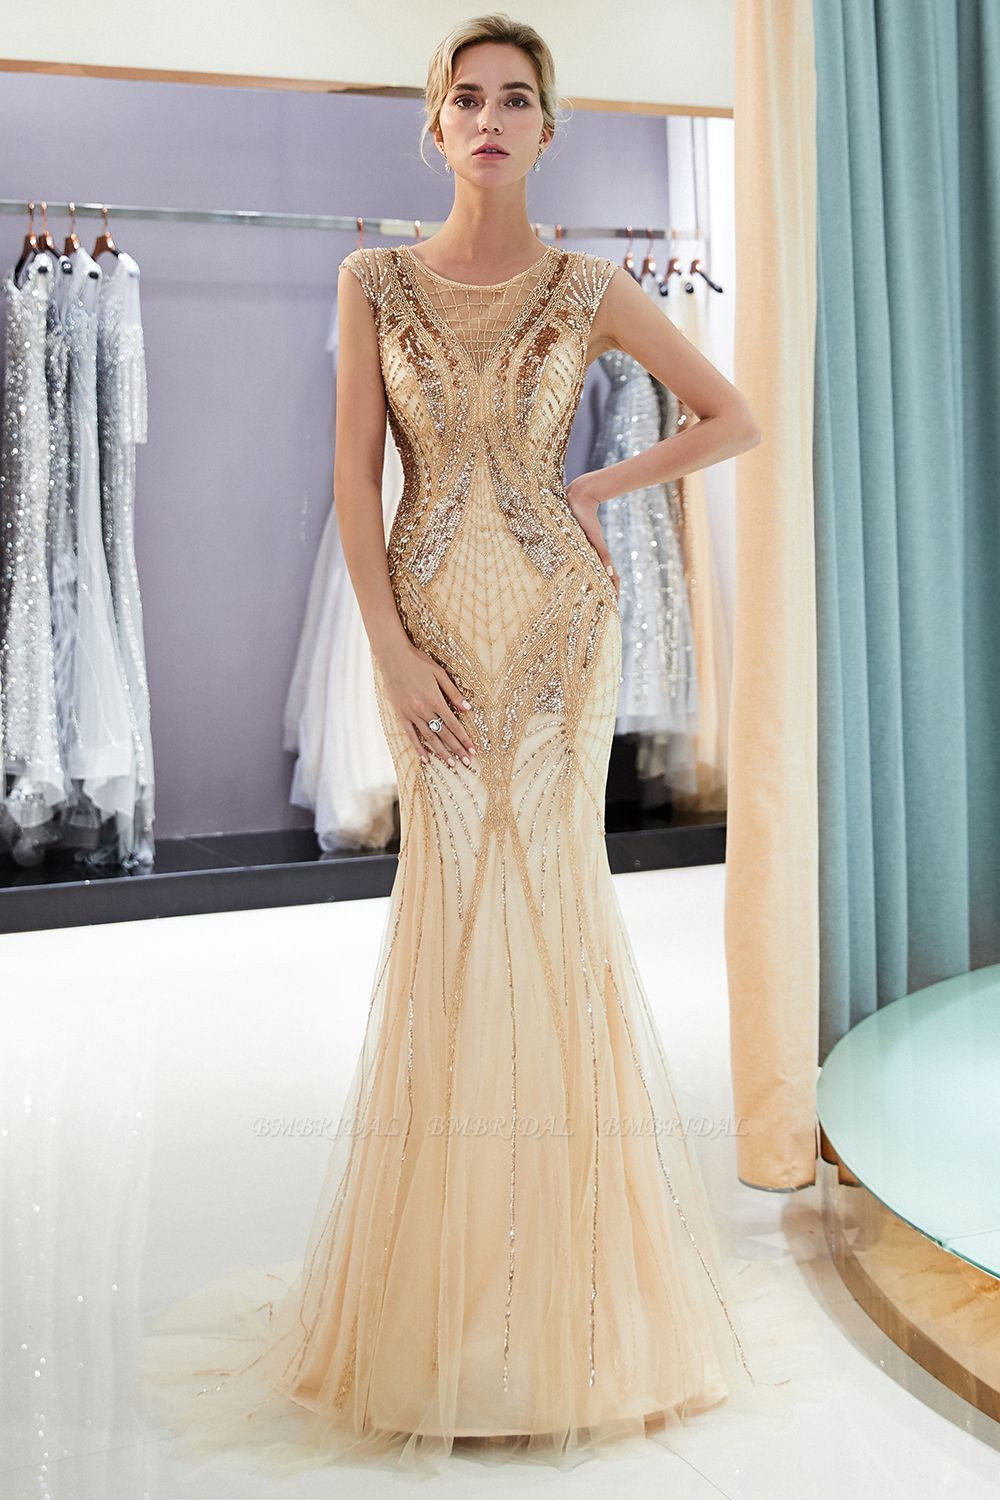 Affordable Mermaid Sleeveless Golden Sequins Beading Formal Party Dresses